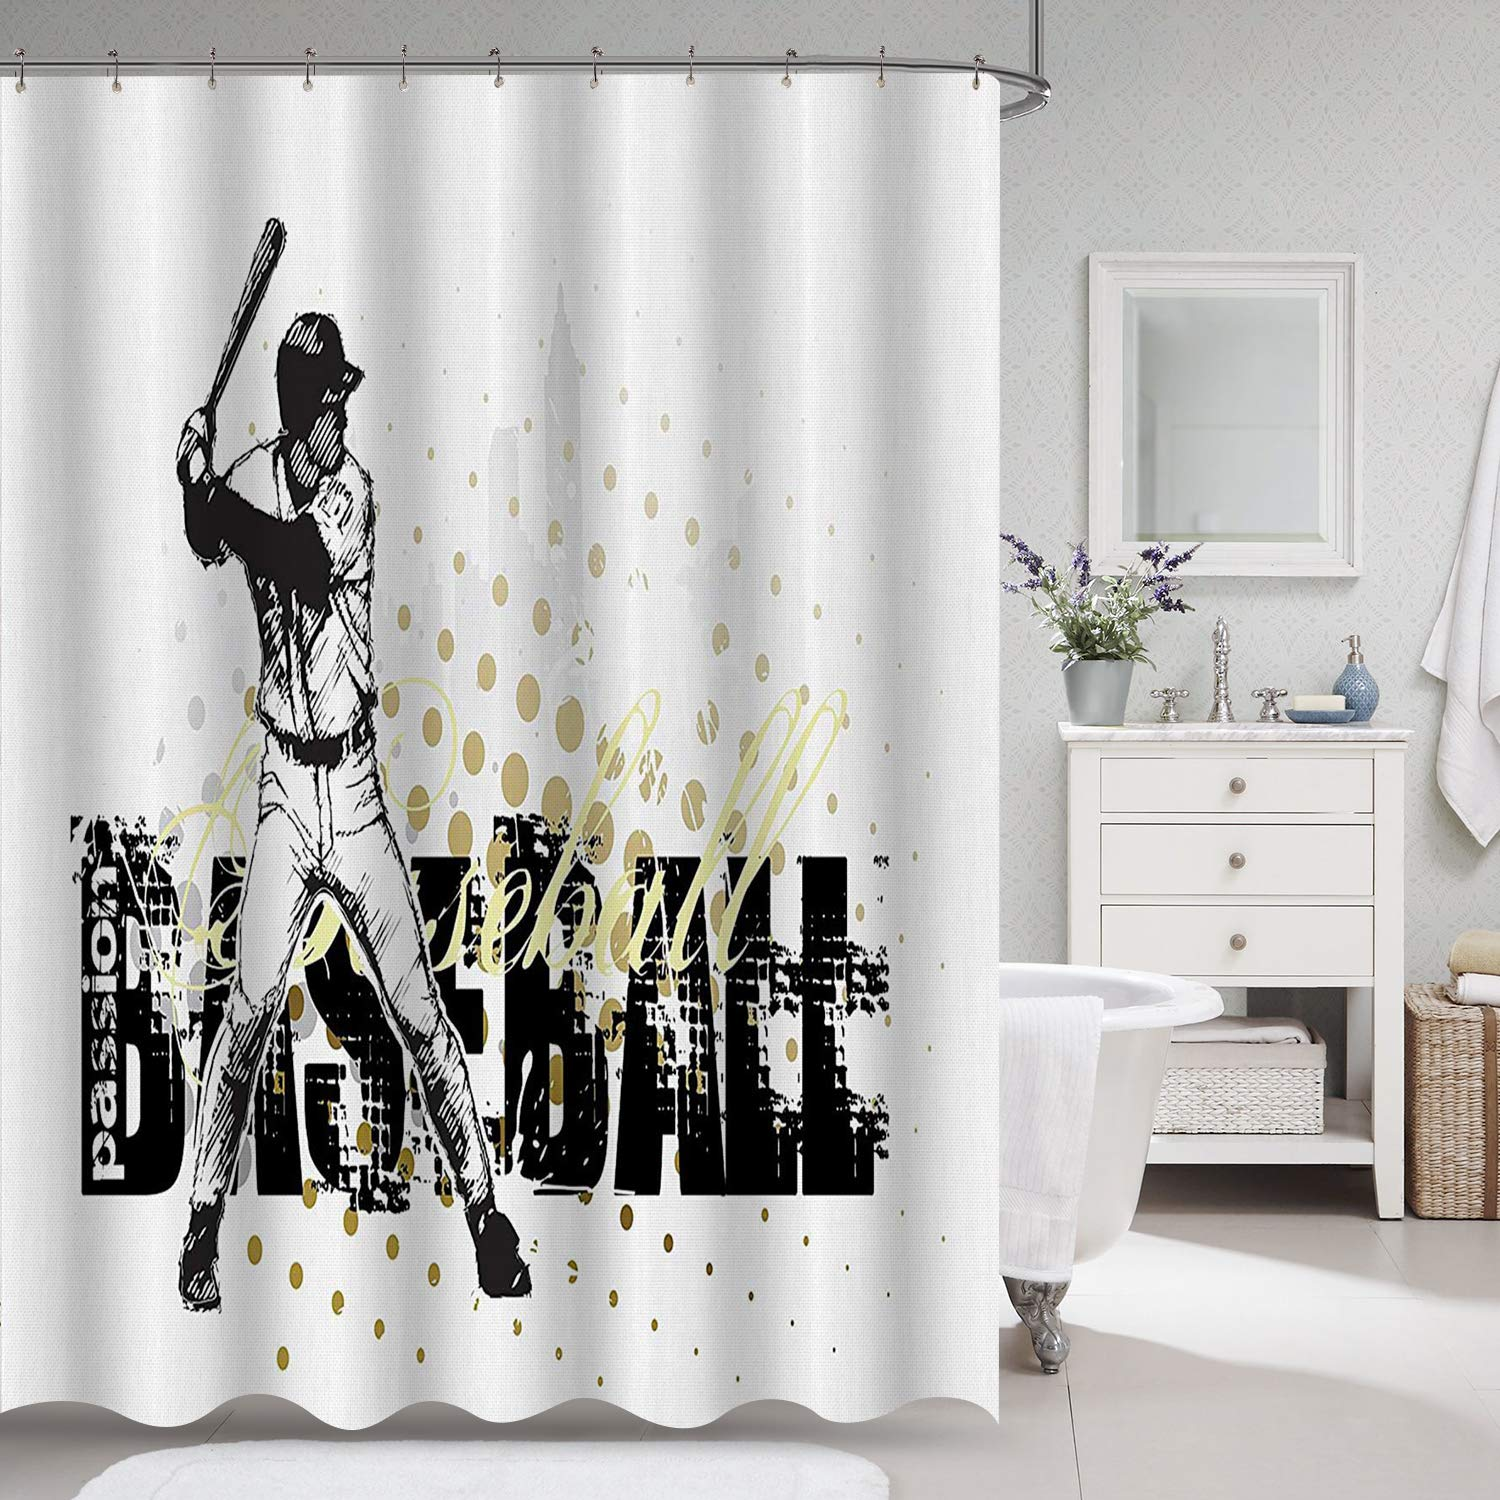 """VVA Baseball Batter Fabric Shower Curtain, Sports Graphic with Dots and Grunge Dark Lettering Background, Batting Team Game, Cloth Decor Set with Hooks for Bathroom, 72"""" Long, Black Yellow White"""